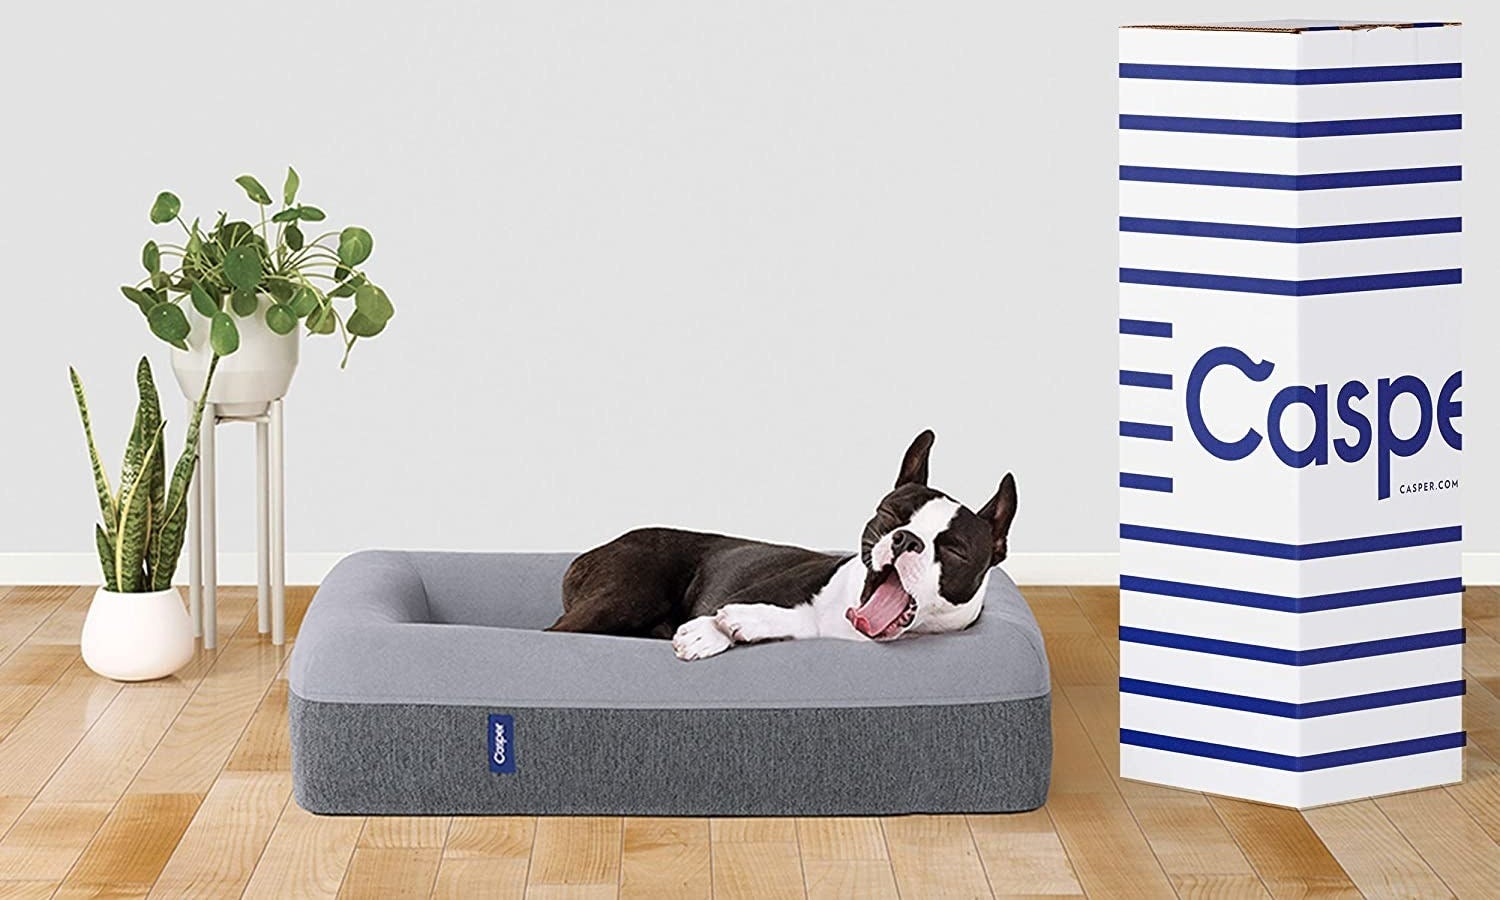 The dog bed